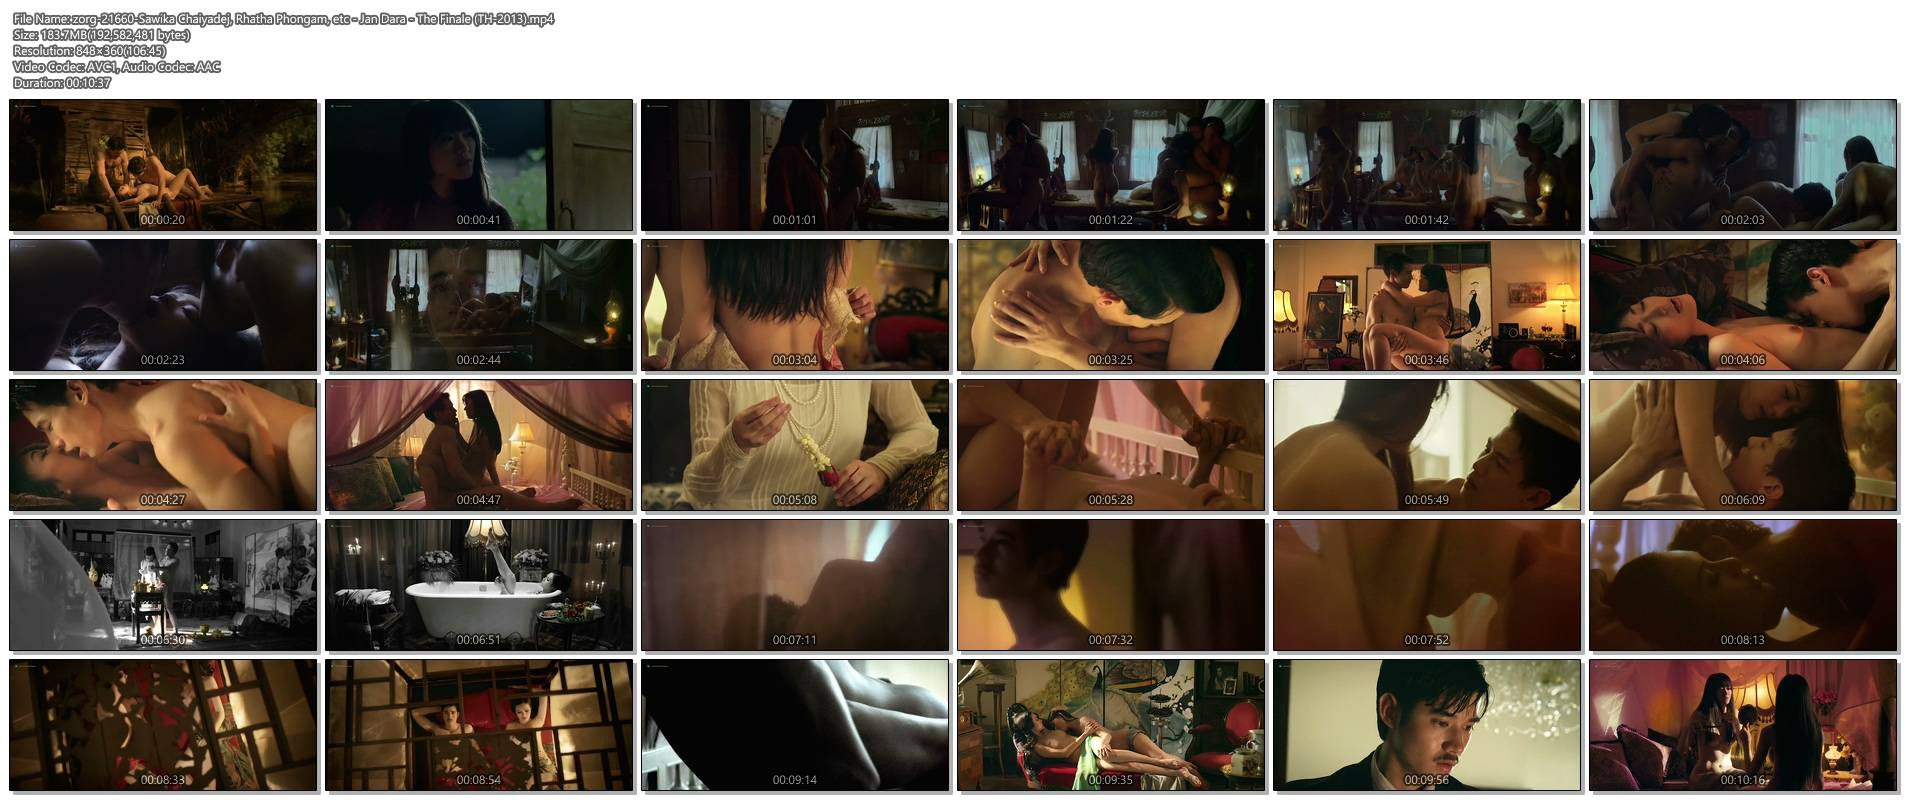 Savika Chaiyadej nude sex Rhatha Phongam and others nude bush an sex - Jan Dara - The Finale (TH-2013) (1)